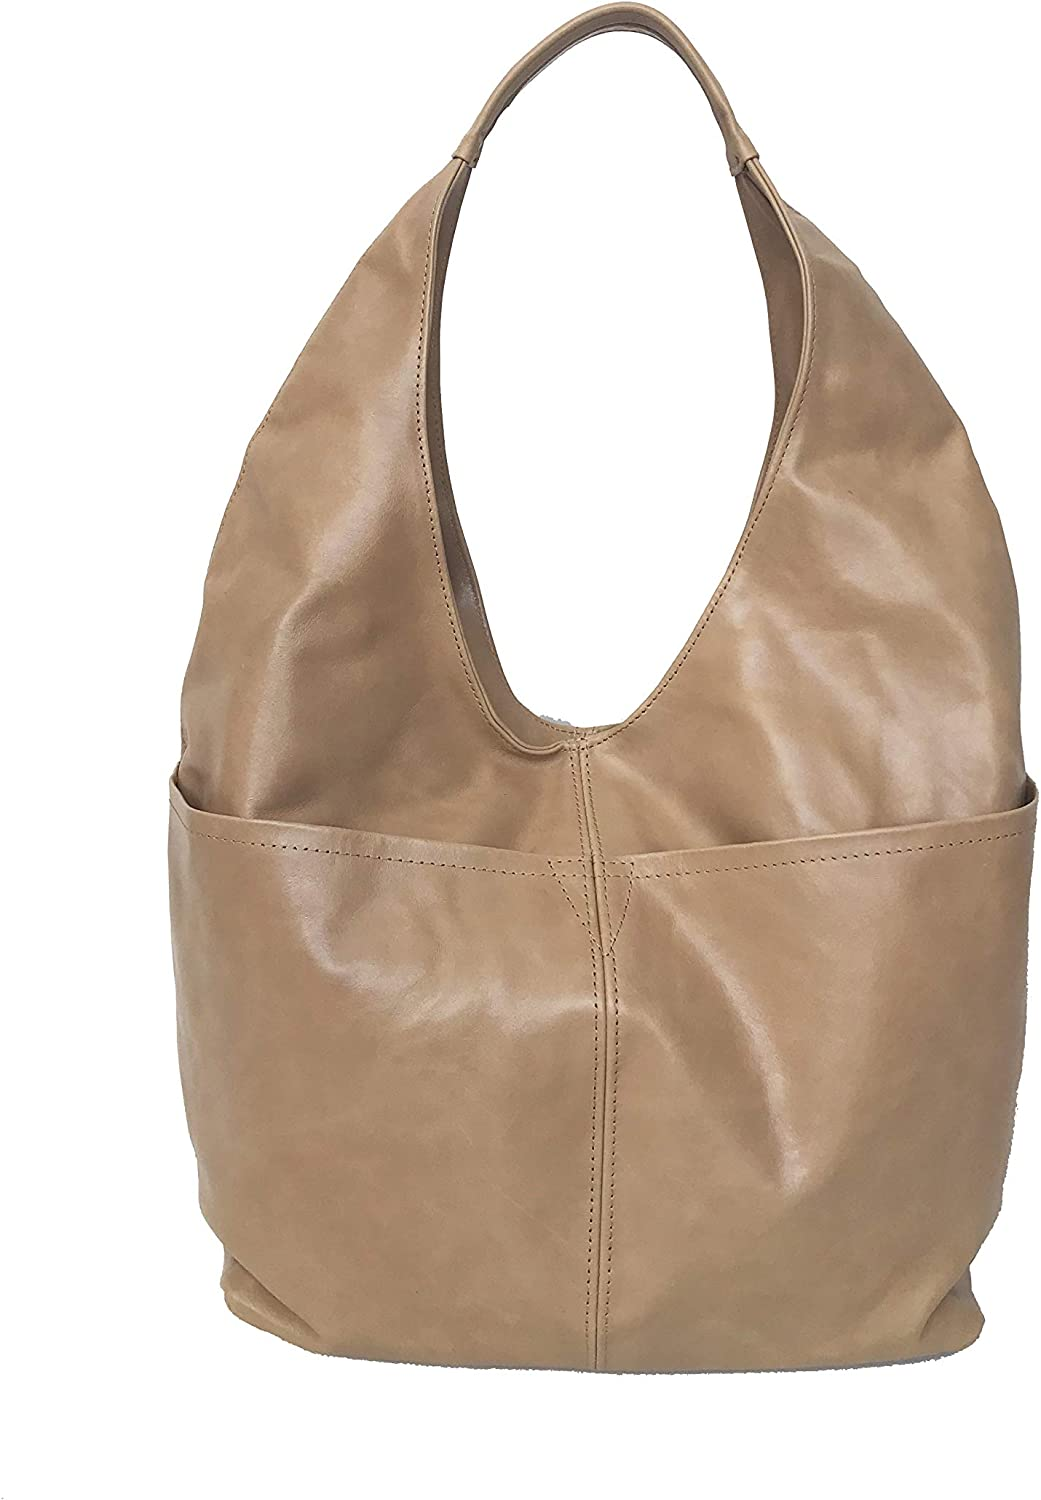 Fgalaze Large Distressed Camel Leather Hobo Bag w Pockets, Large Everyday Purse, Alexis